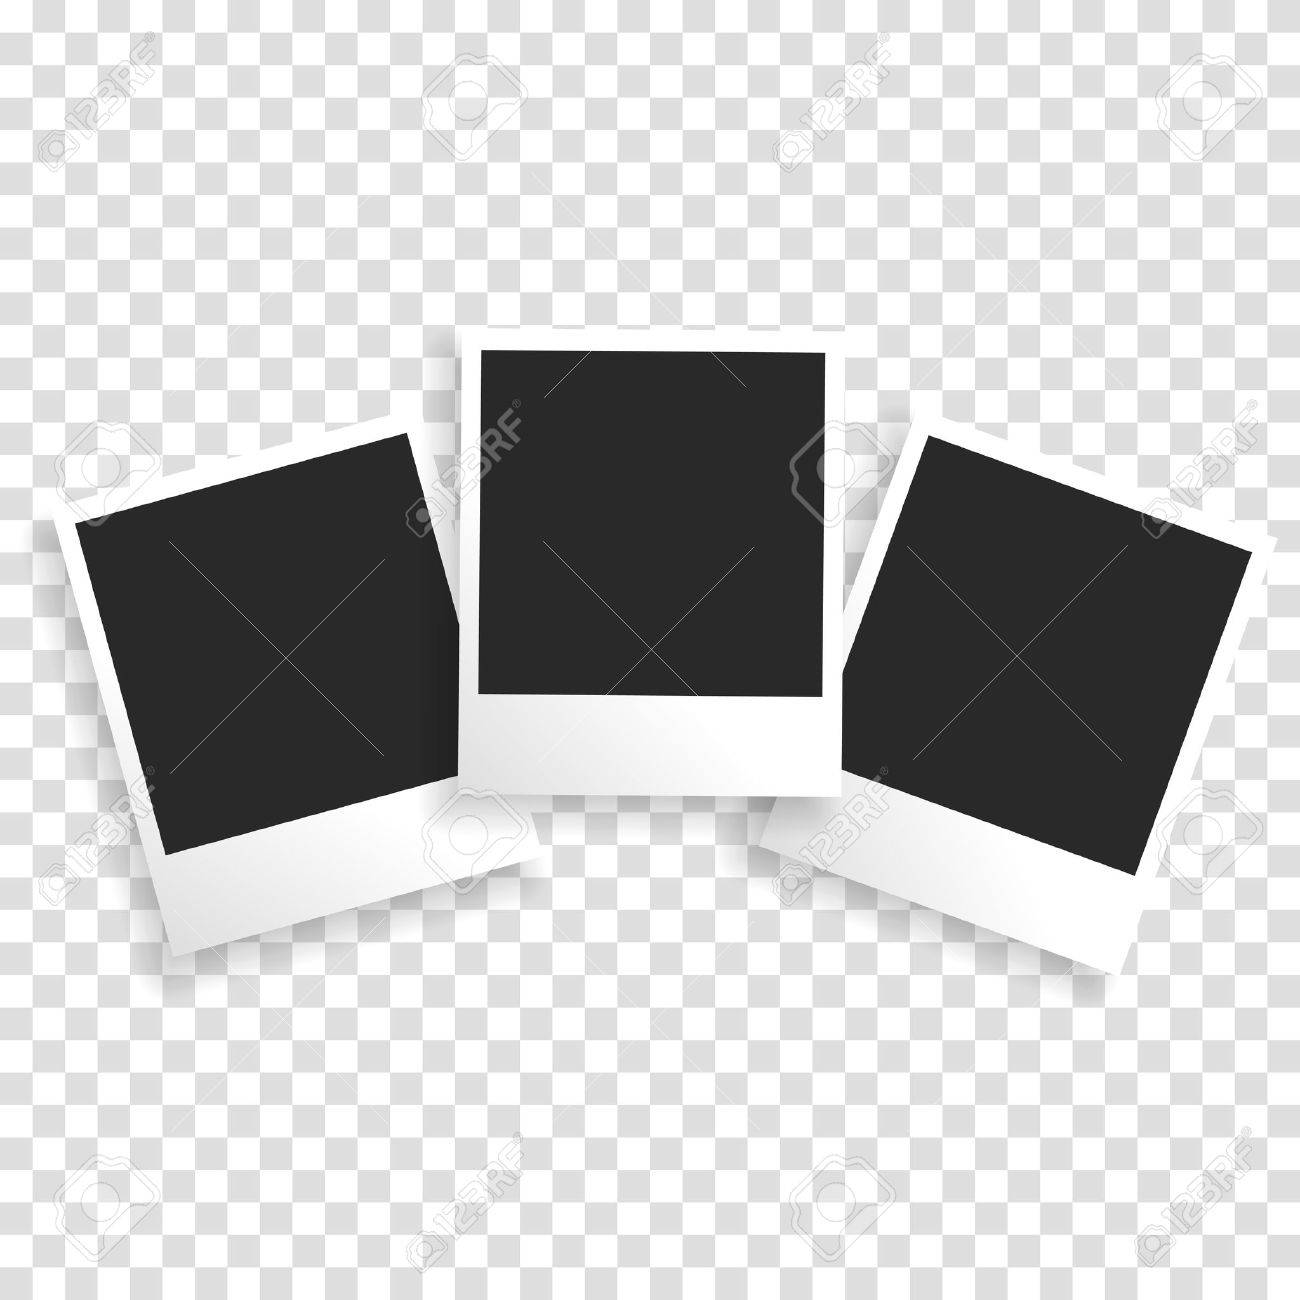 Photo frame on a transparent background with a realistic paper texture and shadow. Can be used to design photo albums, promo, advertising, etc. - 51688793